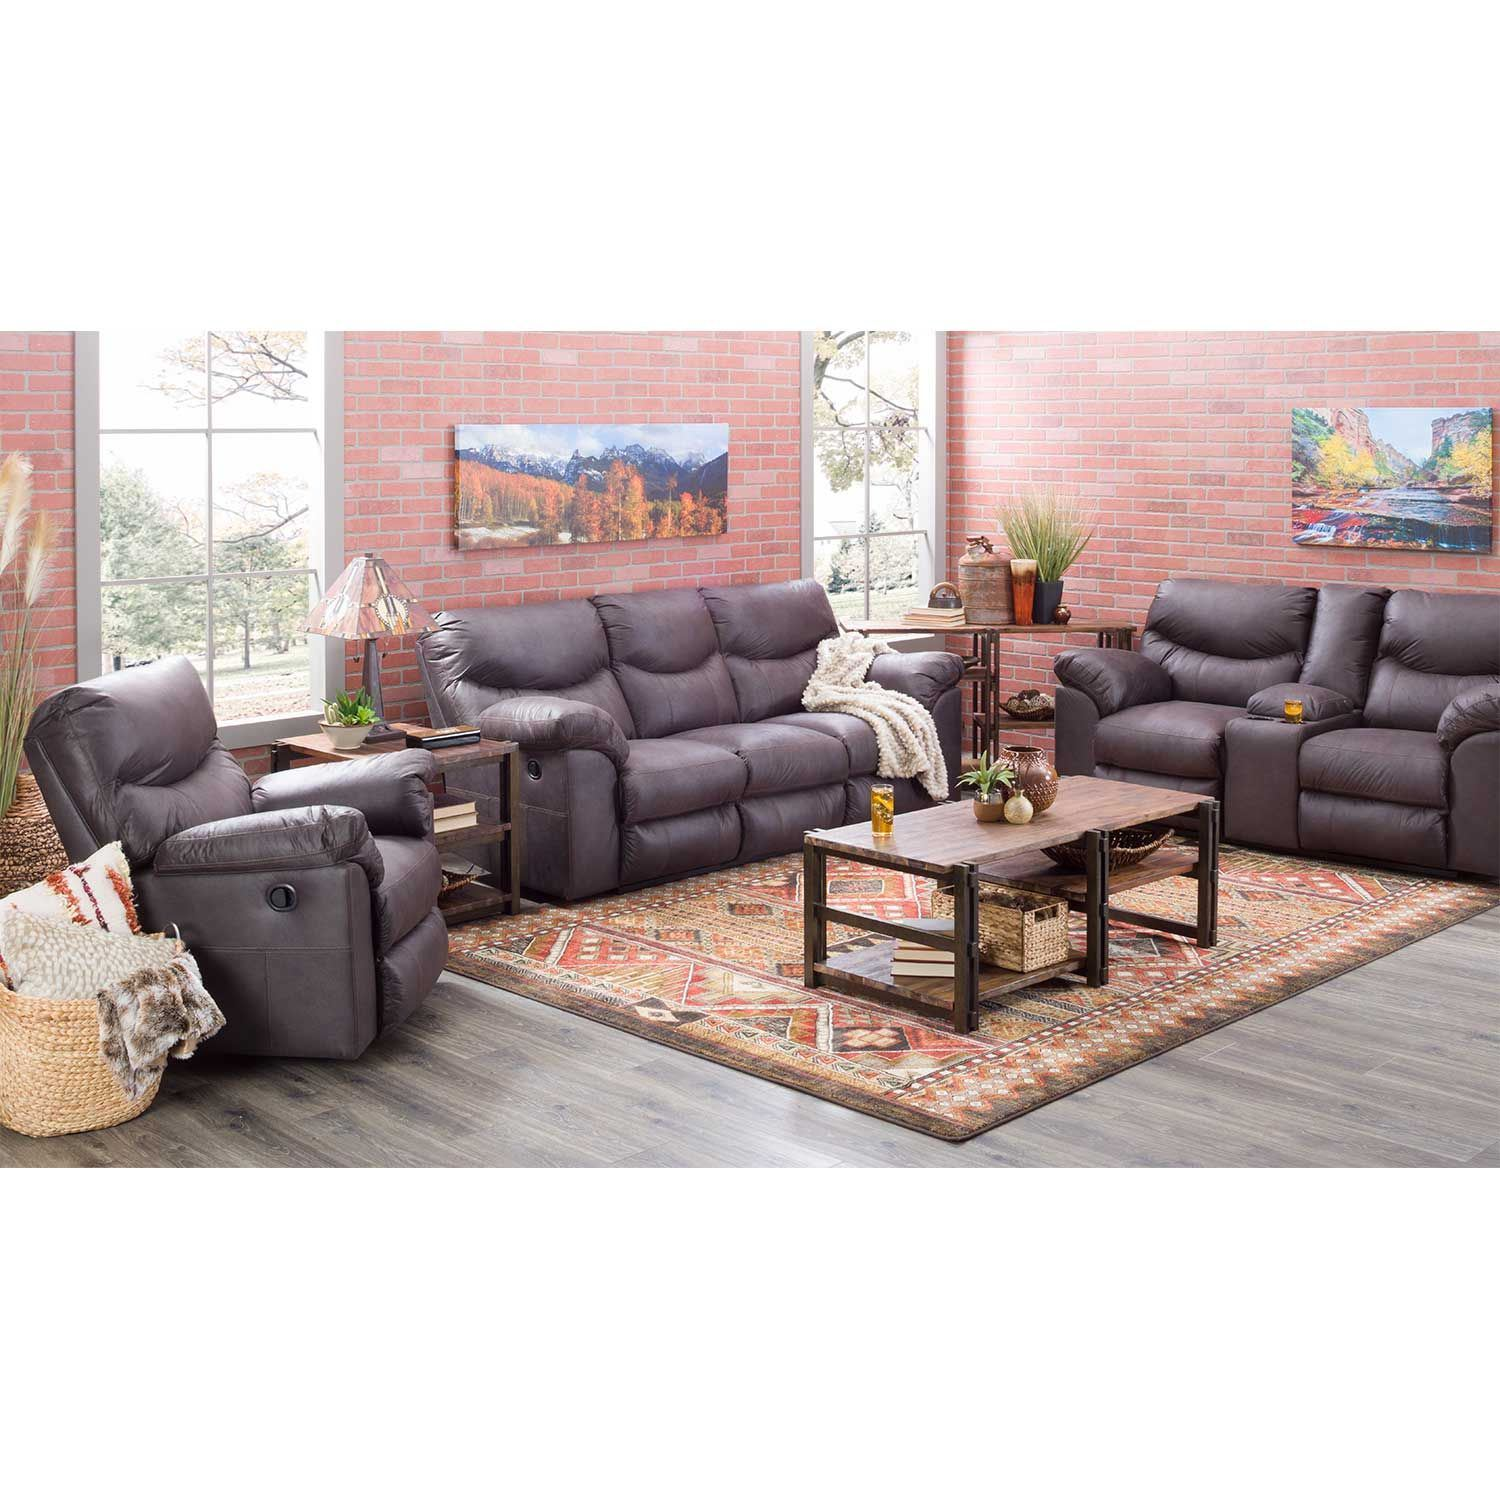 Boxberg Teak Reclining Sofa 3380388 Ashley Furniture Afw